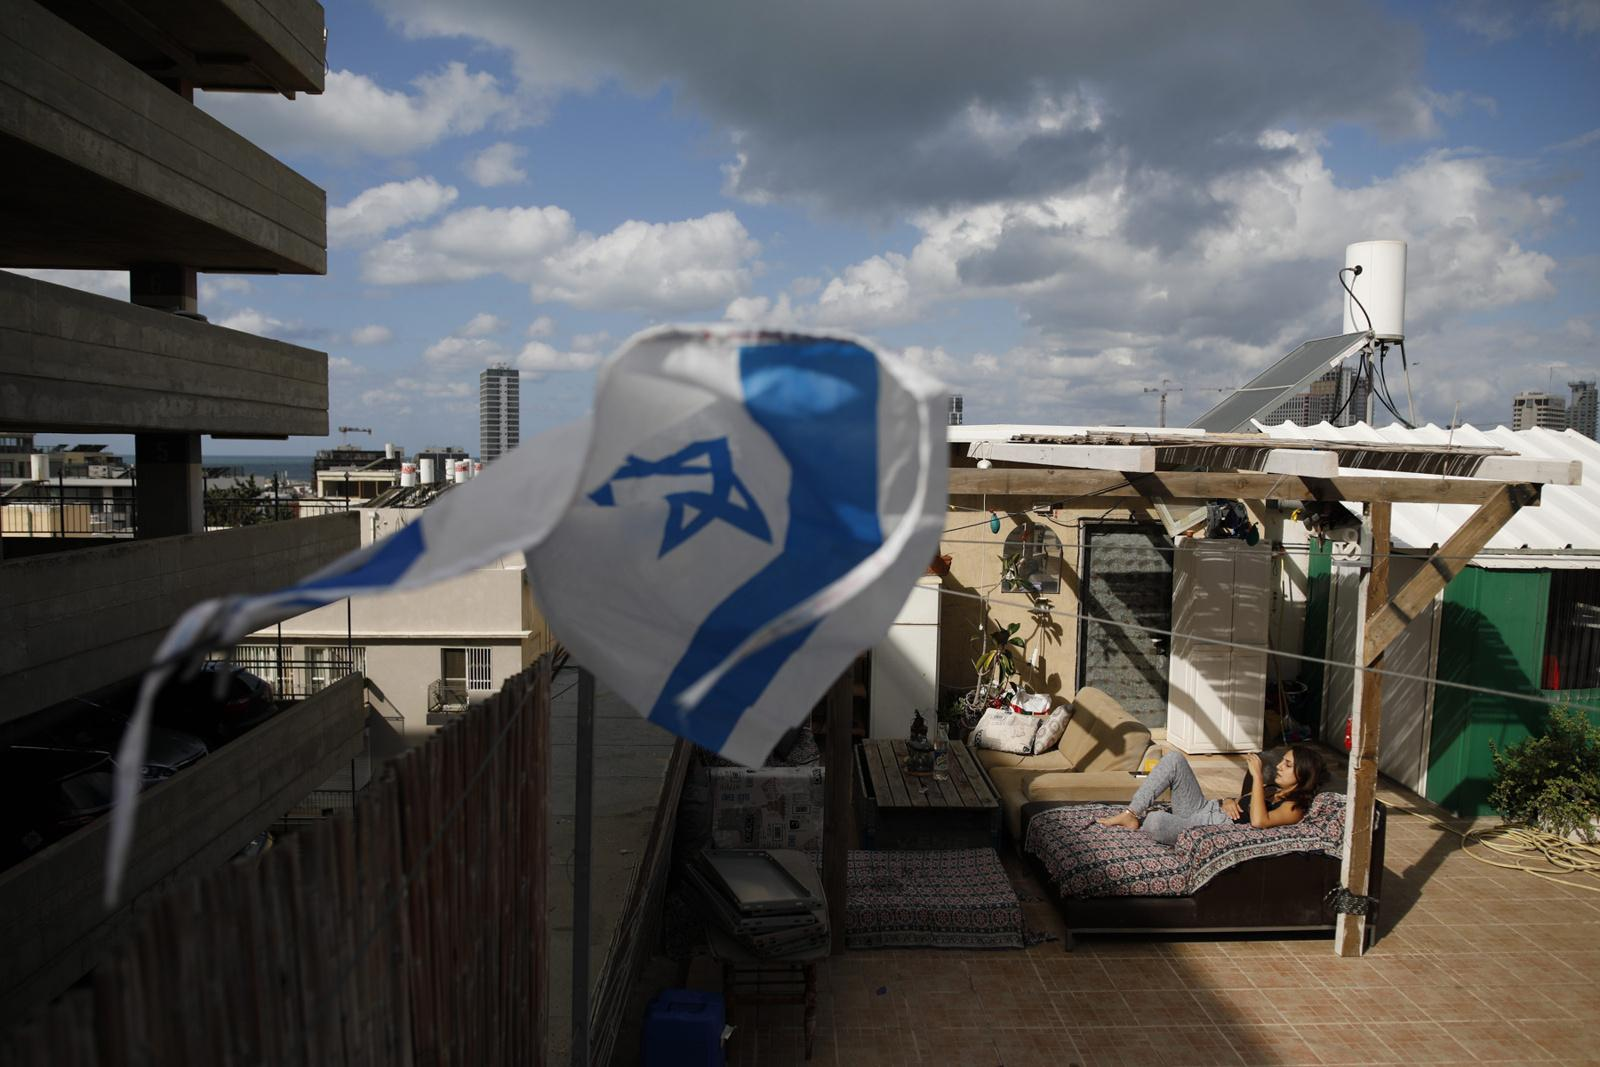 Maayan Saidi, 28, enjoys a cigarette on her rooftop, which is located right next to the Gruzenberg multi-storey car park (left), November 22, 2017, Tel Aviv, Israel. Her brother Idan plans to set up a hydroponic system on the rooftop.